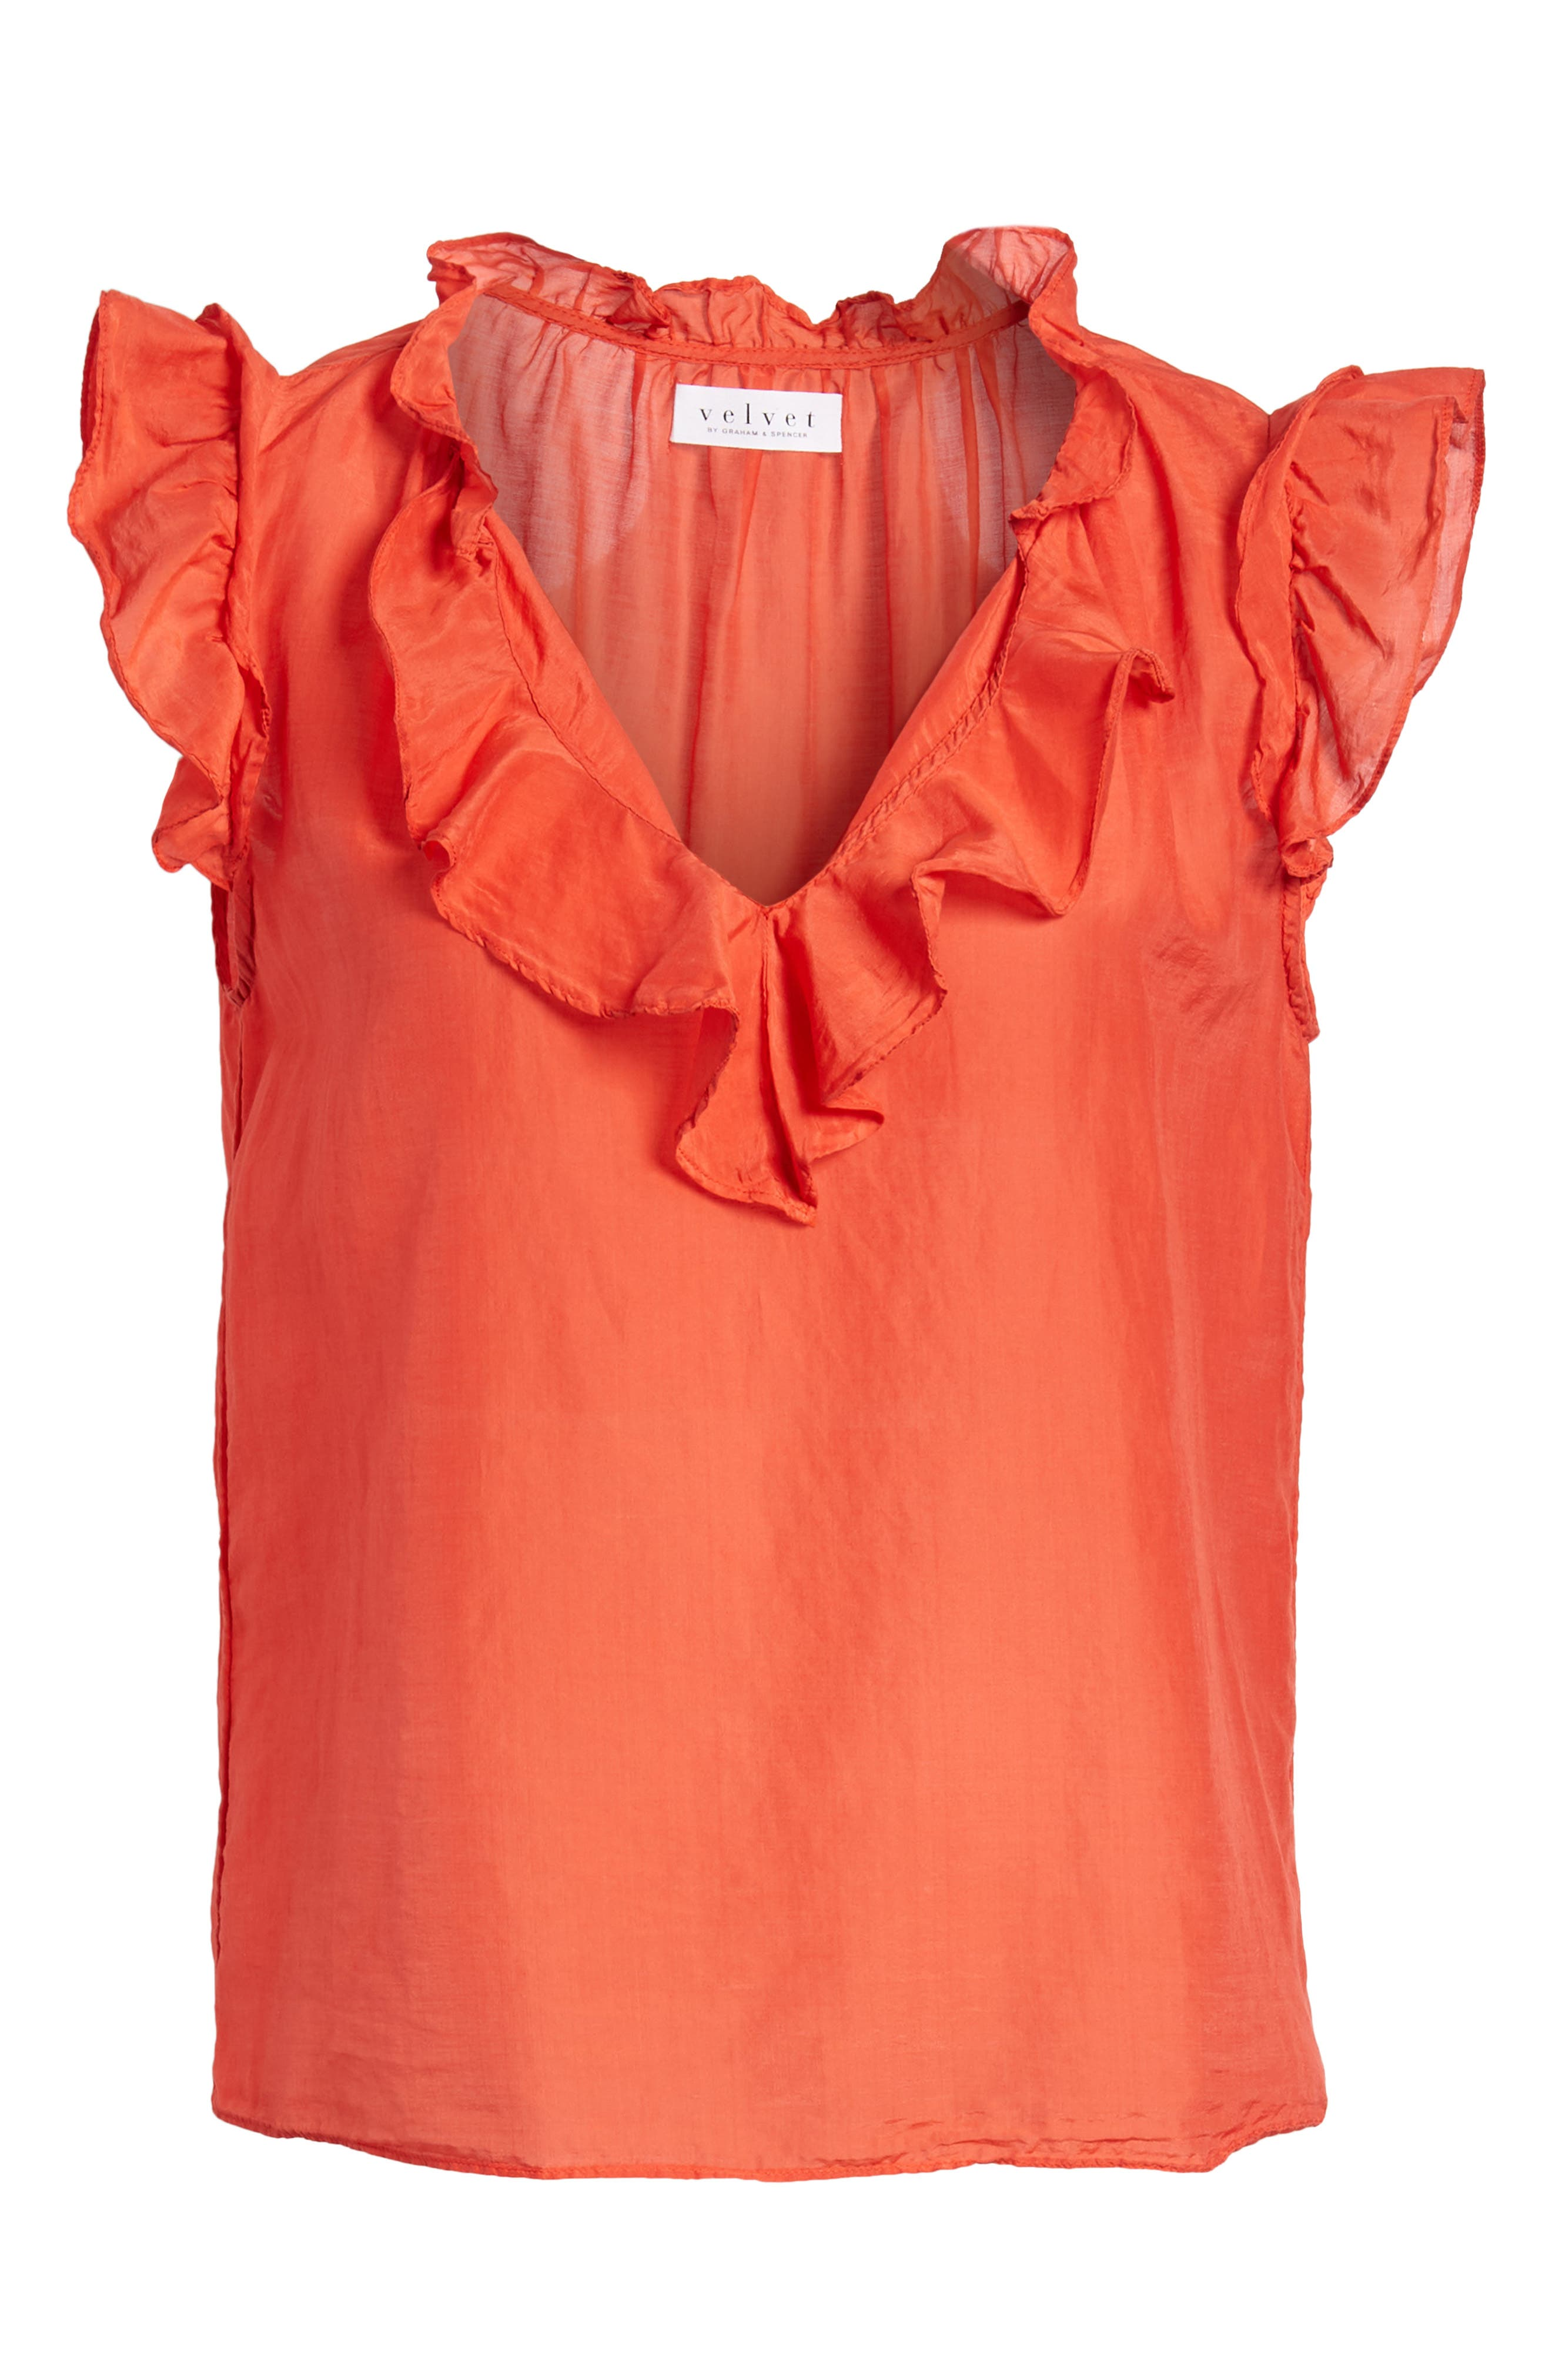 Silk and Cotton Ruffled Top,                             Alternate thumbnail 7, color,                             634